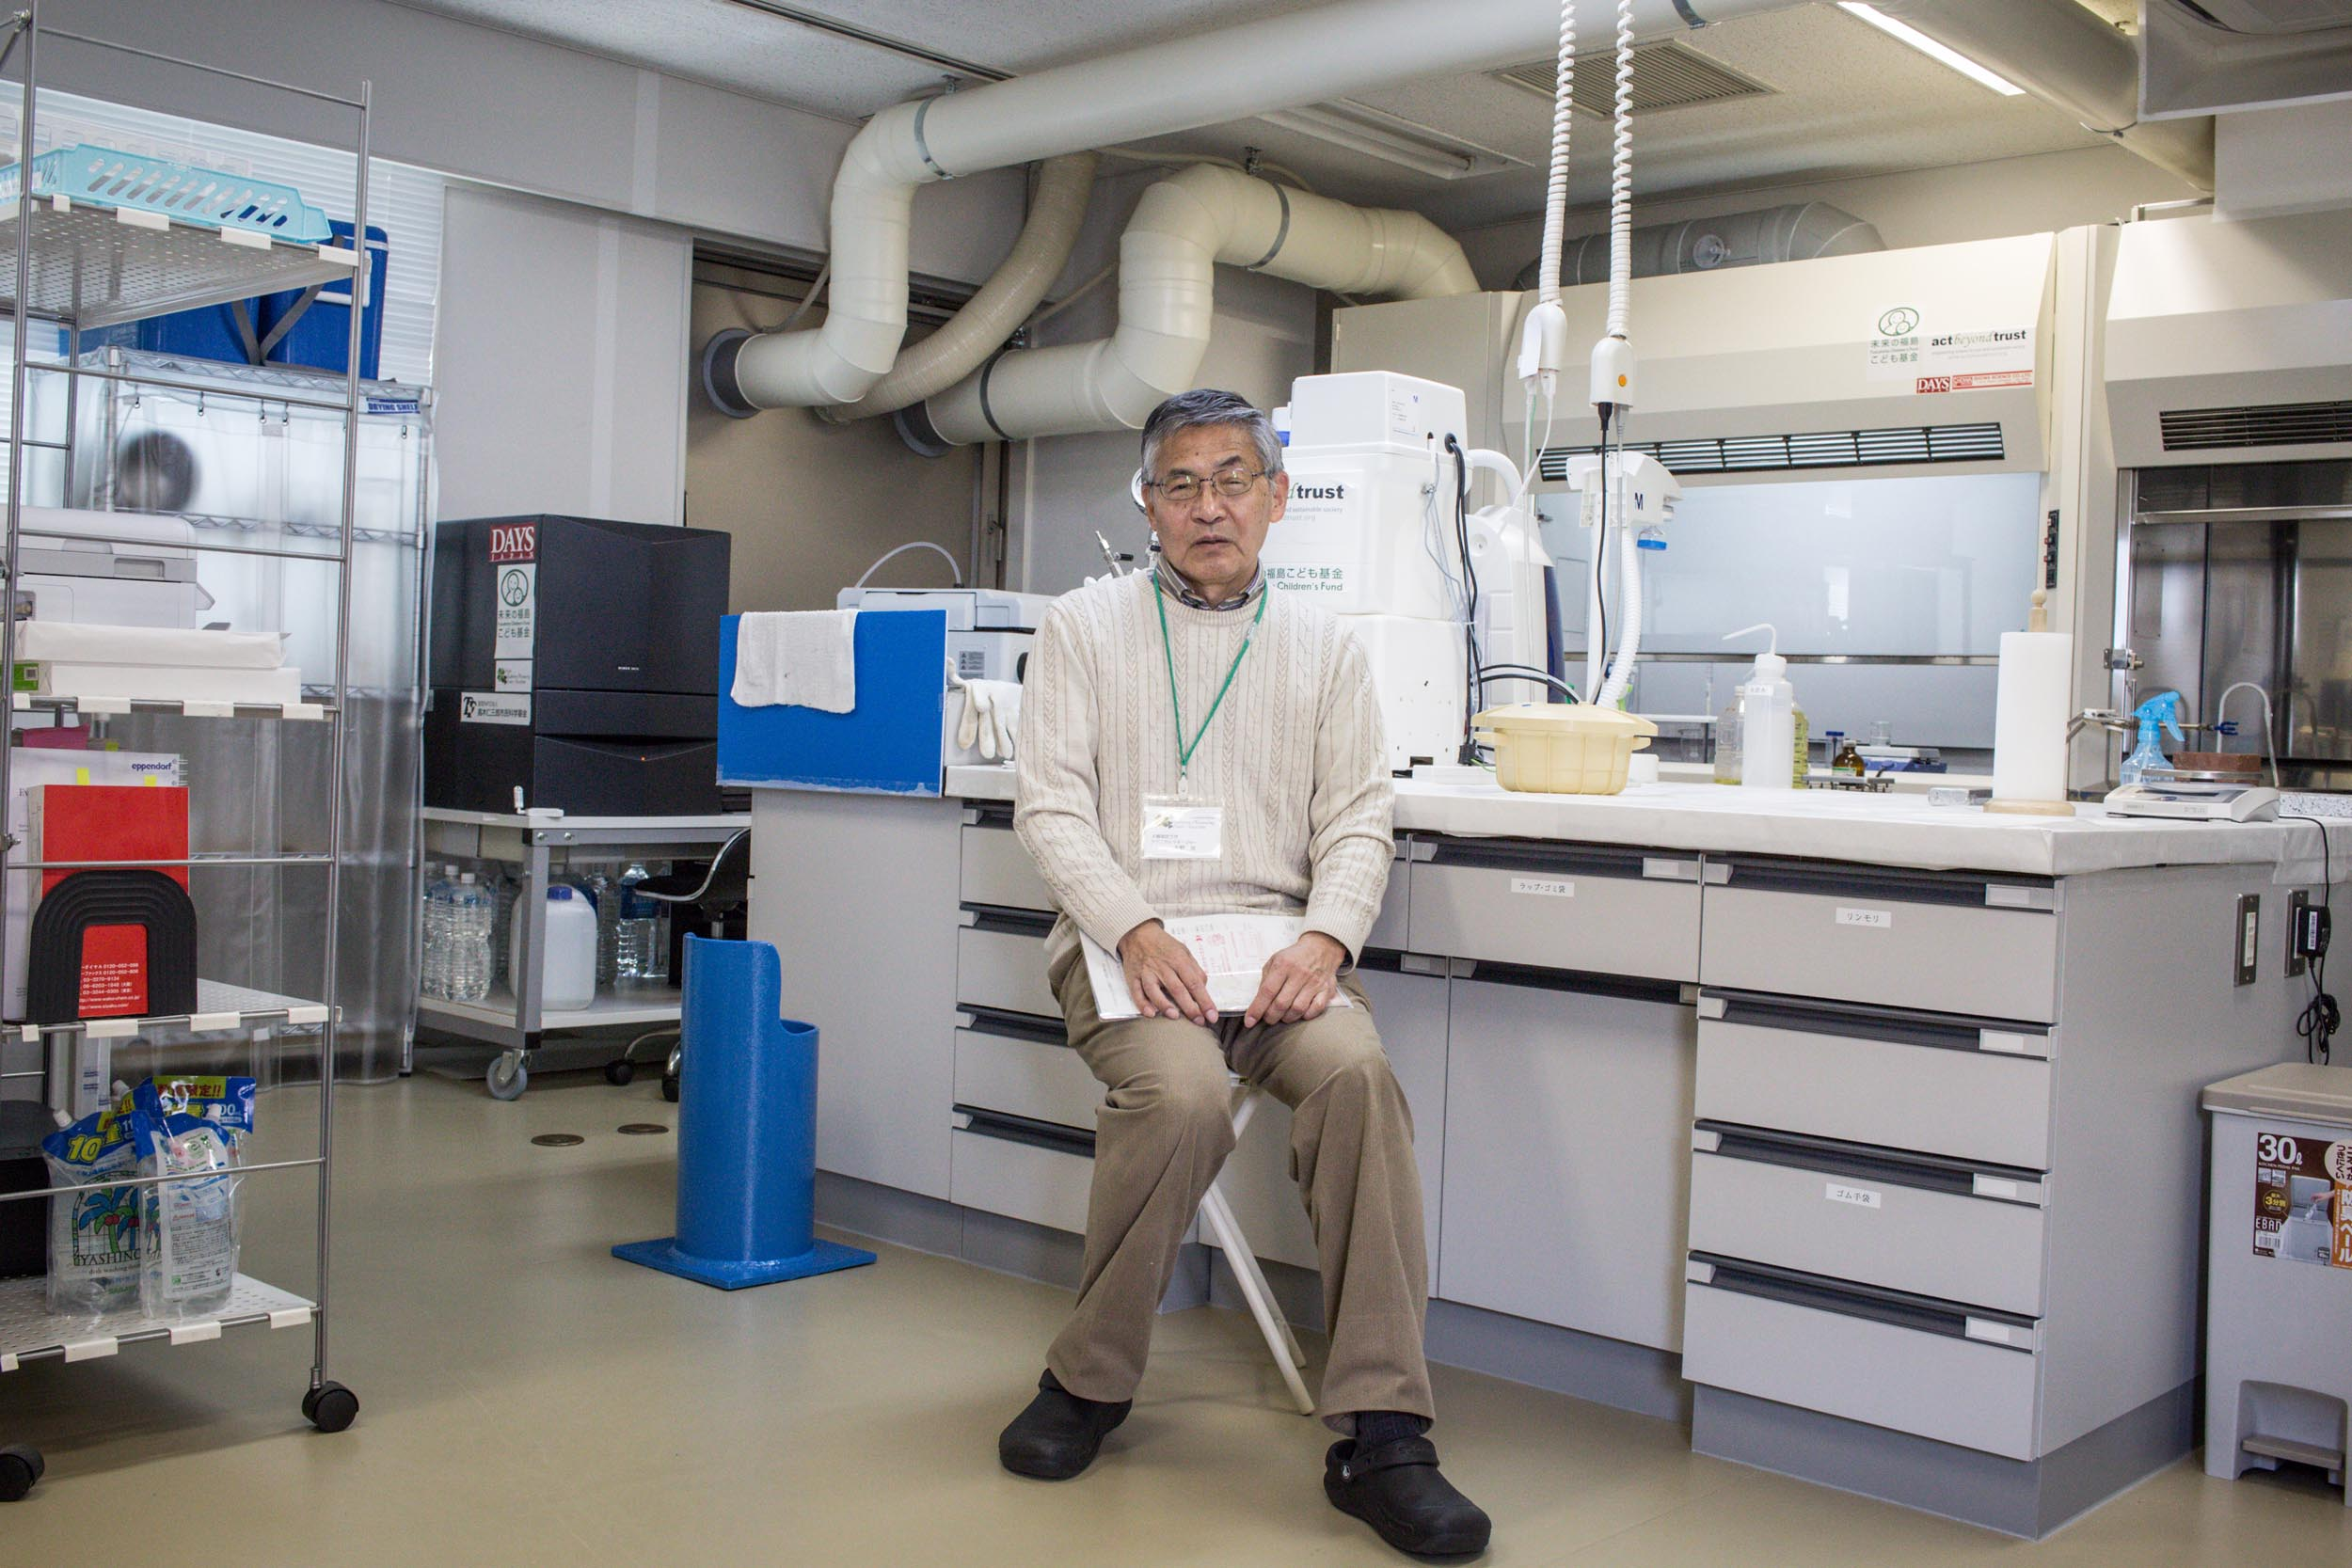 Mr Hiraku Amano, technical manager of Beta-ray laboratory, Iwaki Radiation Measuring Center.The lab was formed in late 2011 by group of mothers called the Iwaki Action Mama as a response to the dishonesty of nuclear regulators which was revealed during the accident and suspicious and sceptical of official reports they decided to measure radiation themselves. Today the lab measures the radioactive isotopes cesium 134 and 137, strontium 90, tritium and collects data on gamma radiation.